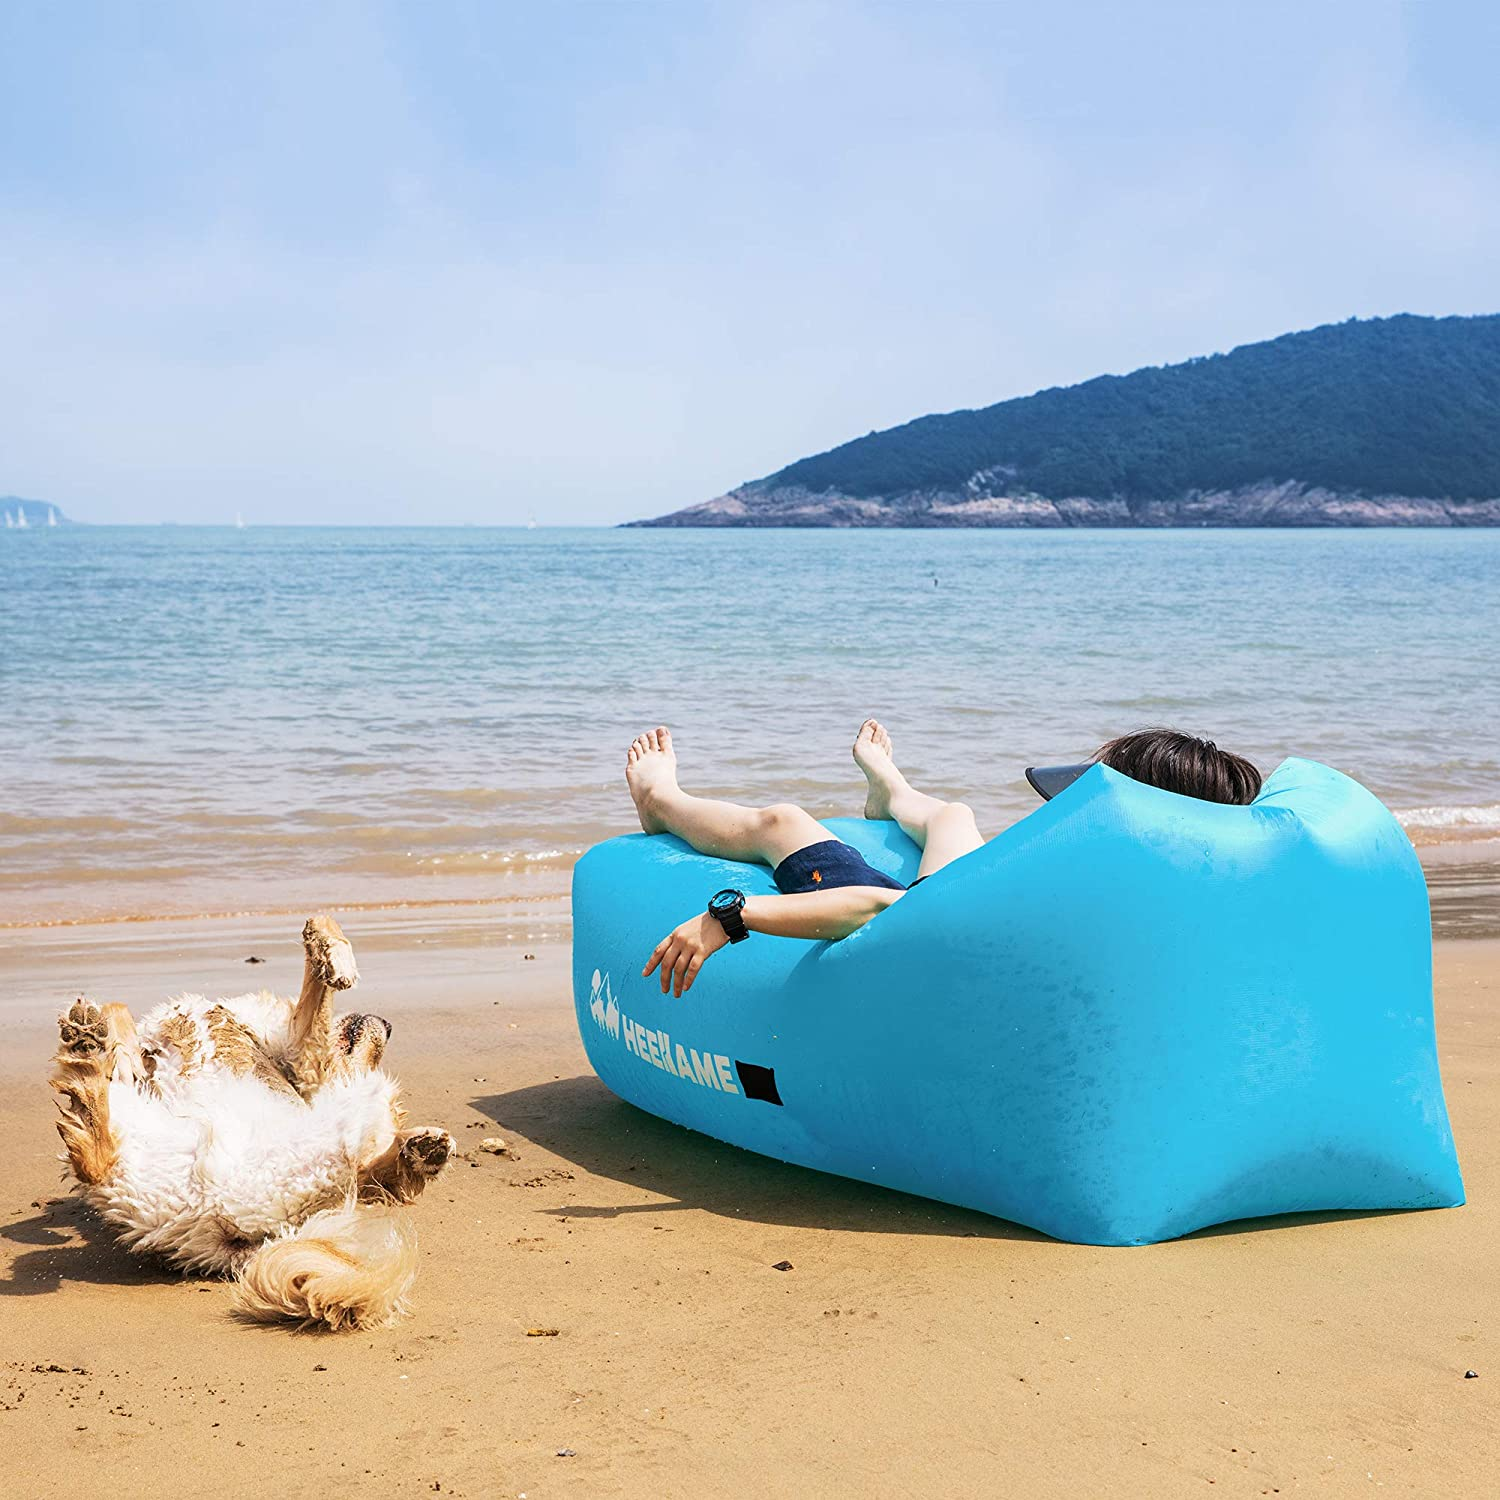 HEEKAME Inflatable Lounger Air Sofa Portable Hammock with Opener,Water Proof Ideal Gift Couch for Beach Lakeside Backyard Traveling Camping Picnics /& Music Festivals